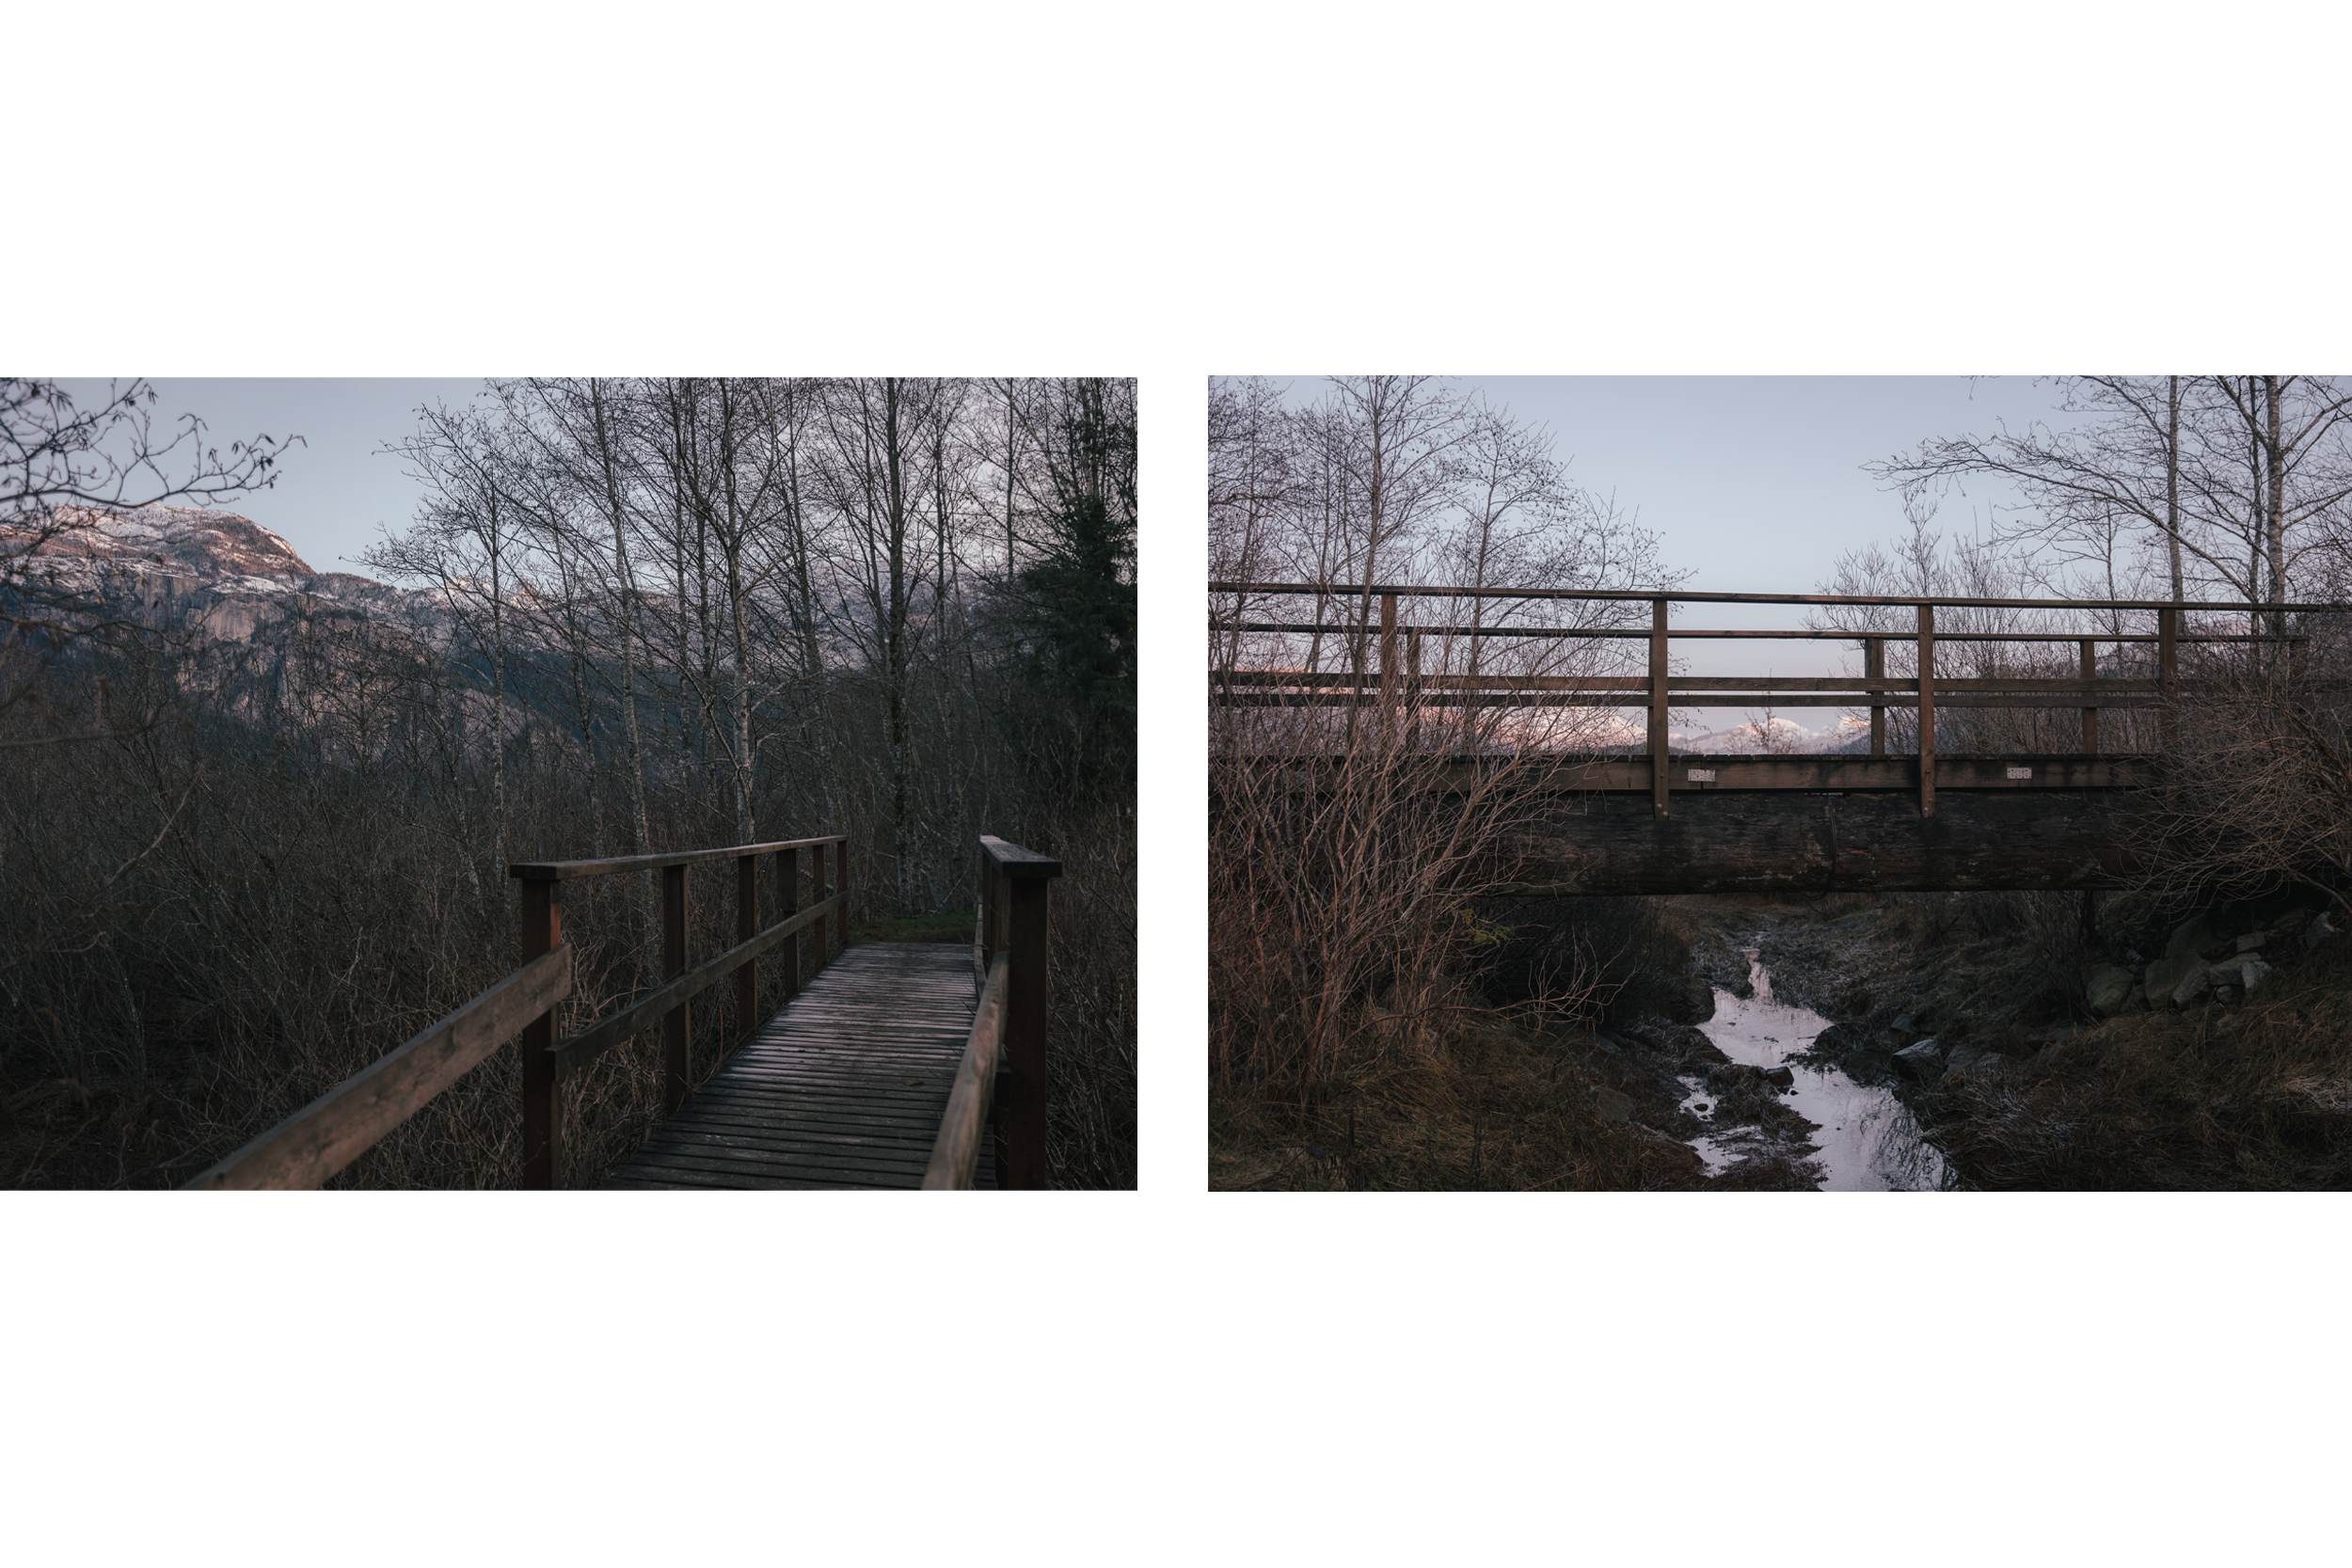 lately_bridge